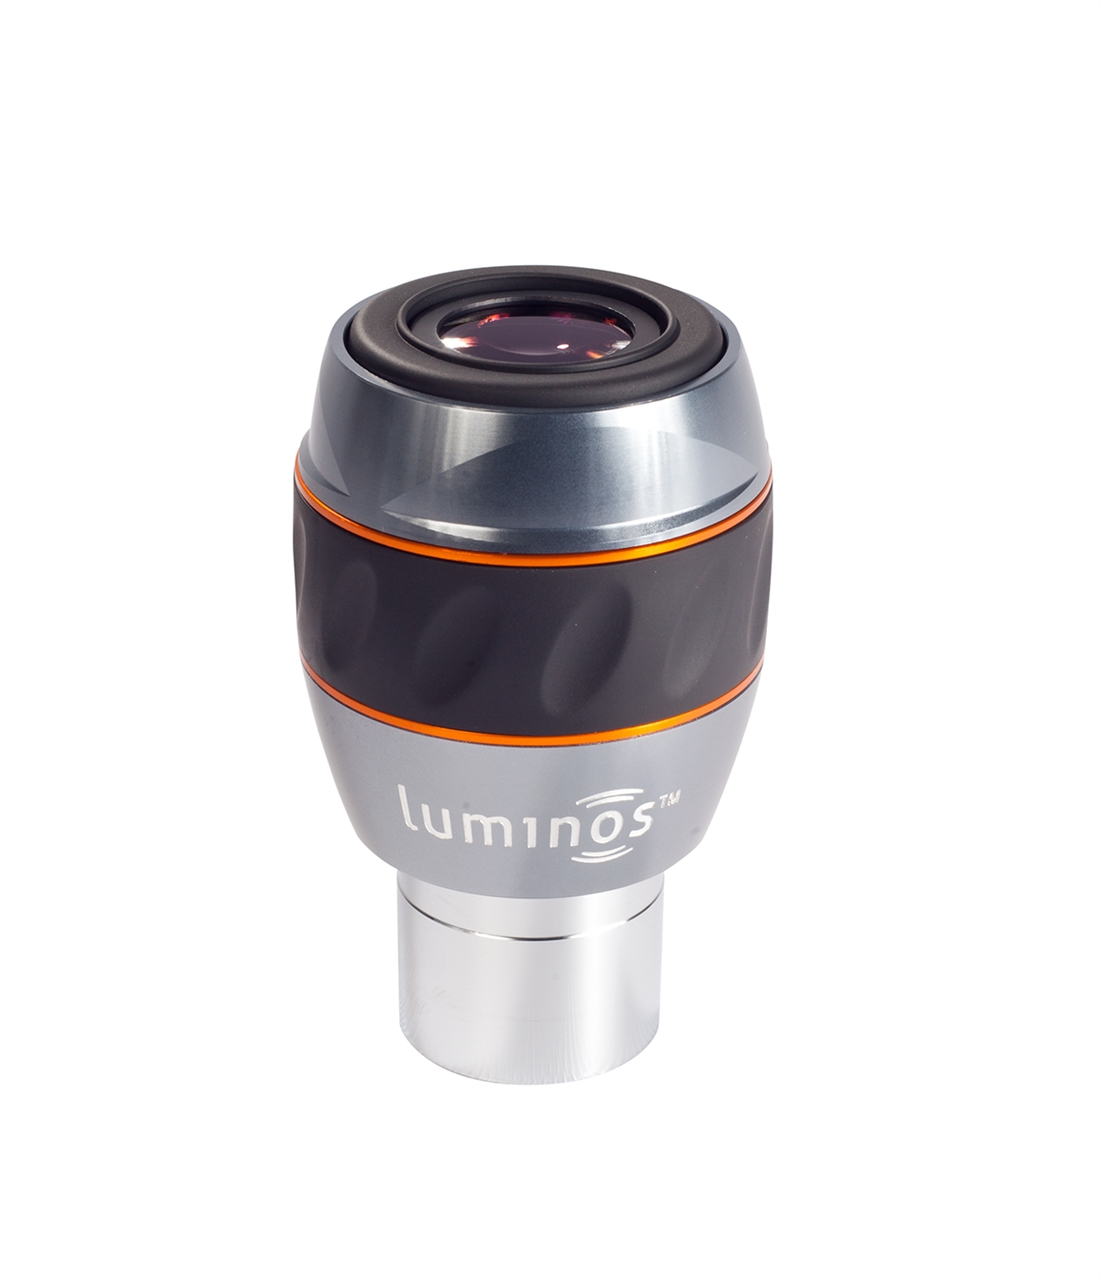 Celestron Luminos 7 mm Eyepiece